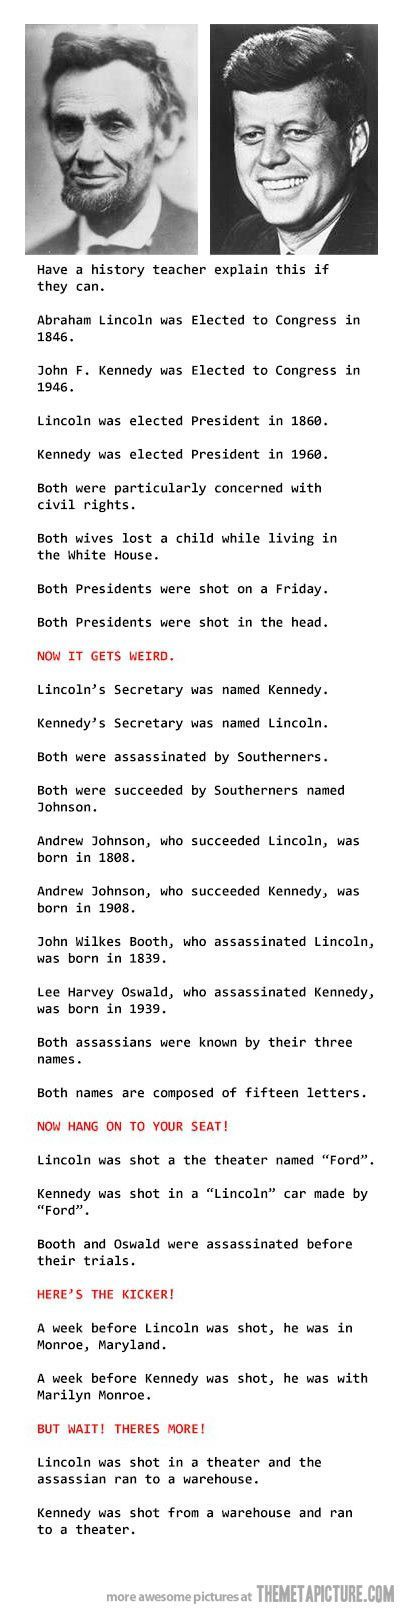 Mind blowing coincidences so glad I found this, I heard about it years ago, weird!